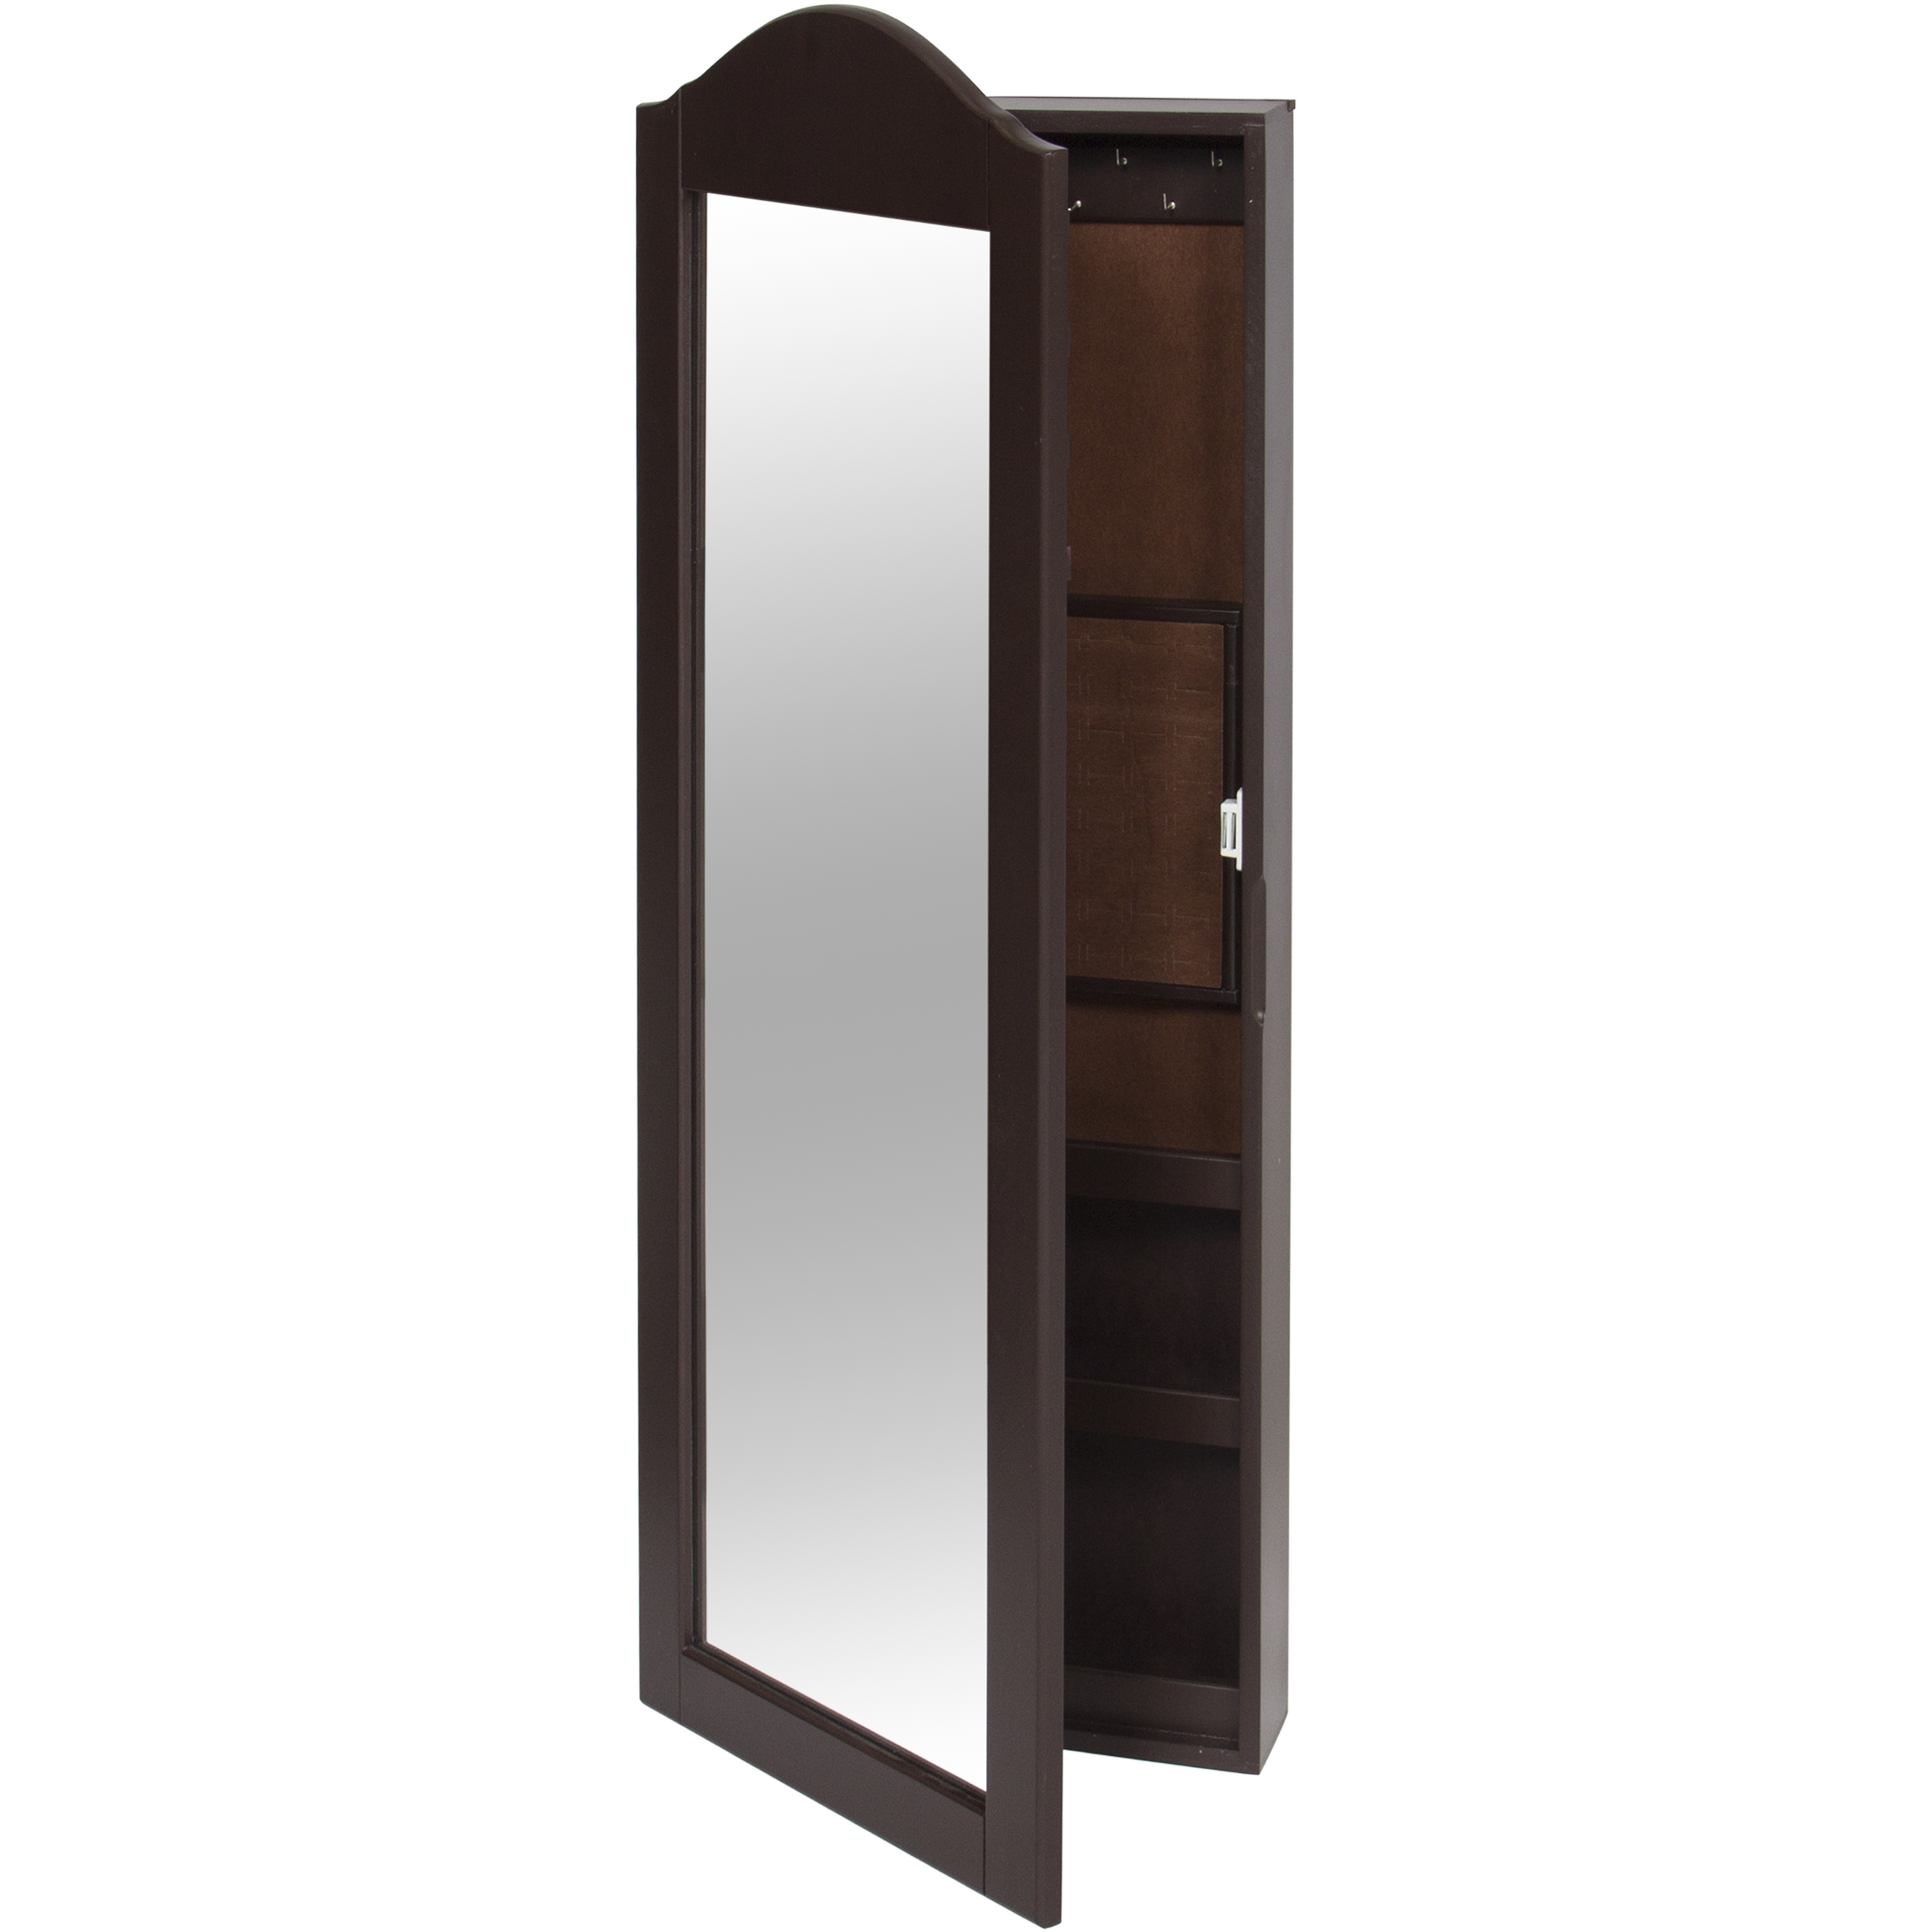 best choice products wall mounted mirror jewelry cabinet armoire brown 816586021304 ebay. Black Bedroom Furniture Sets. Home Design Ideas